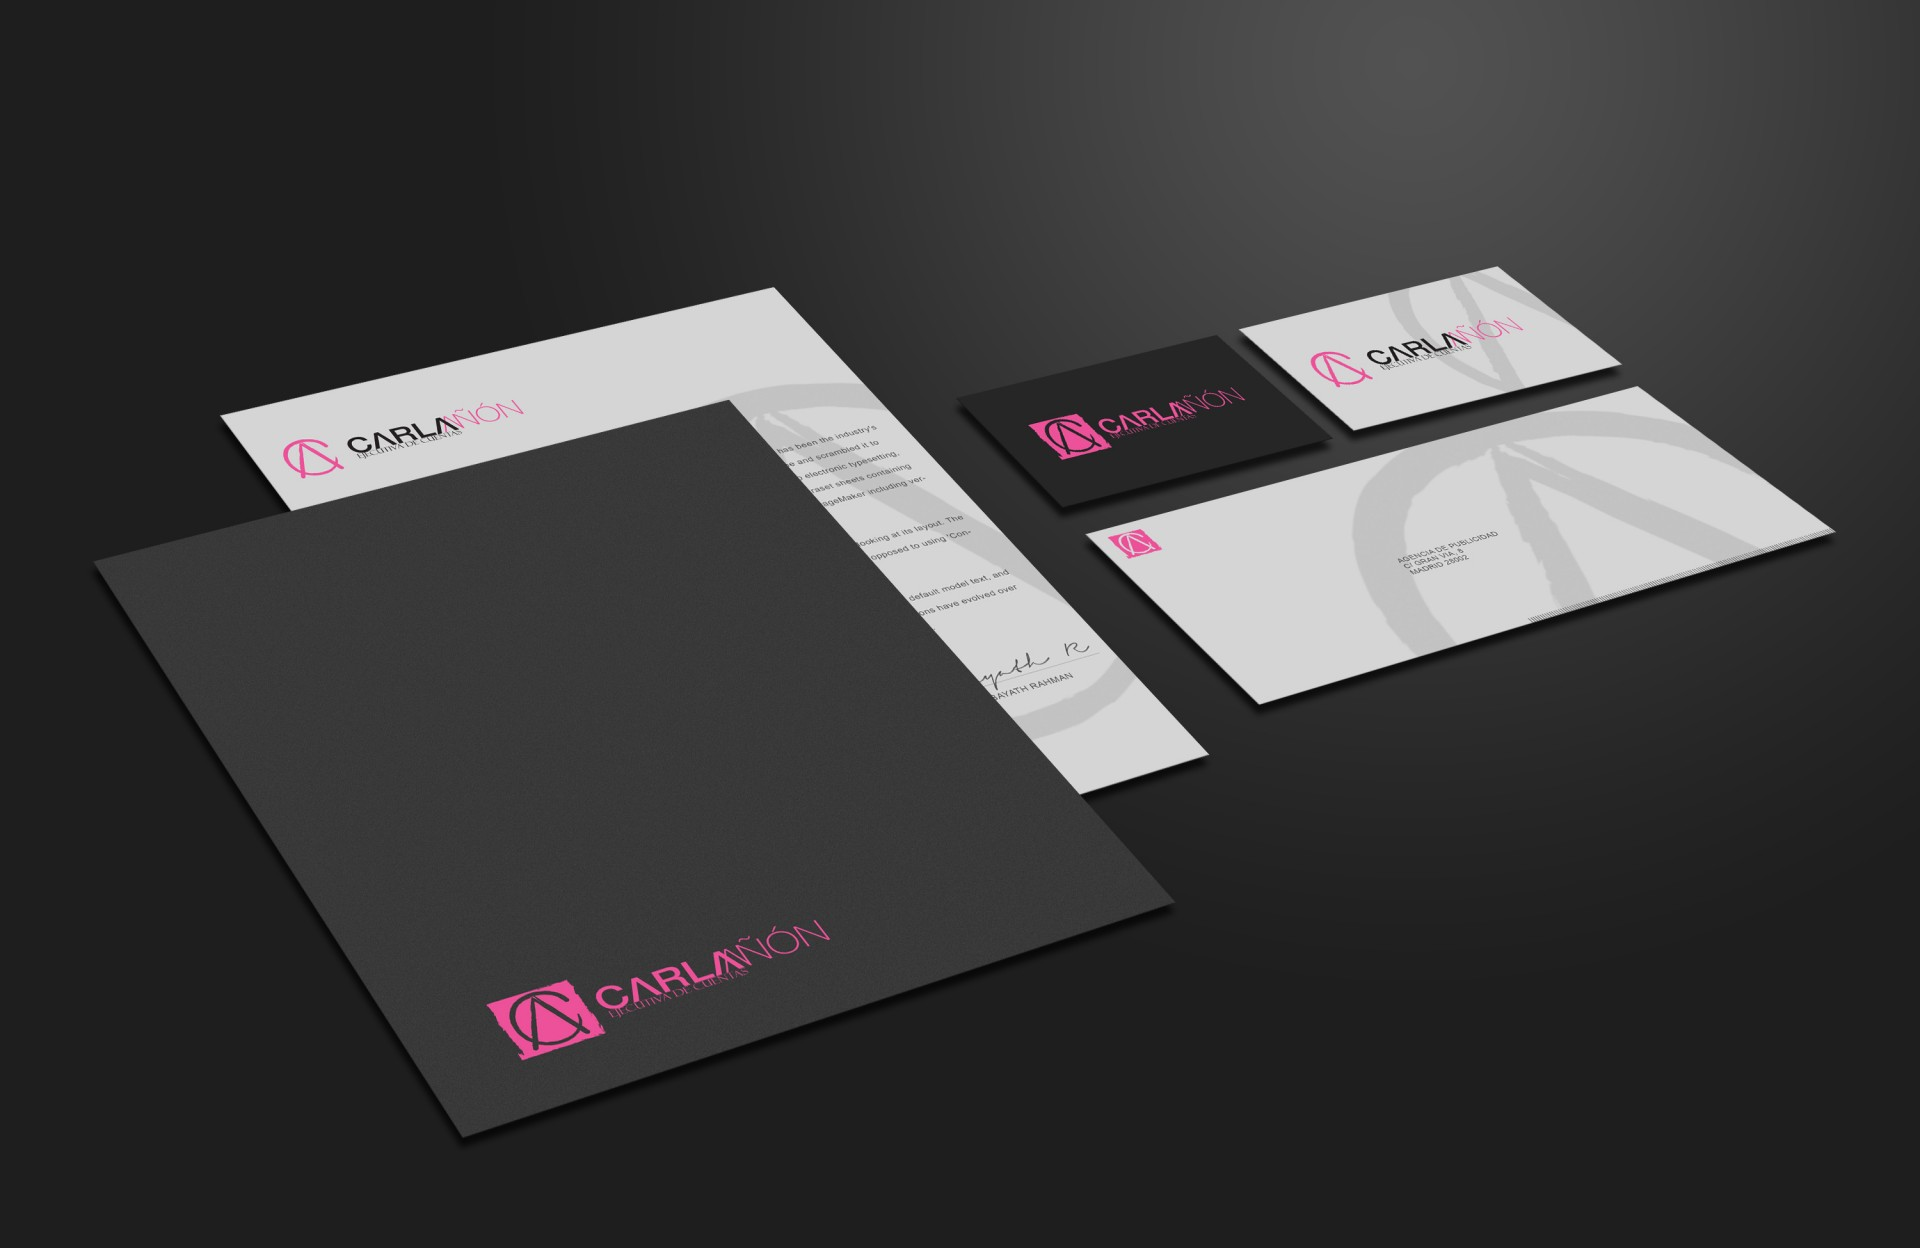 techandall_Stationery_Mock_Up_Collection_Xi